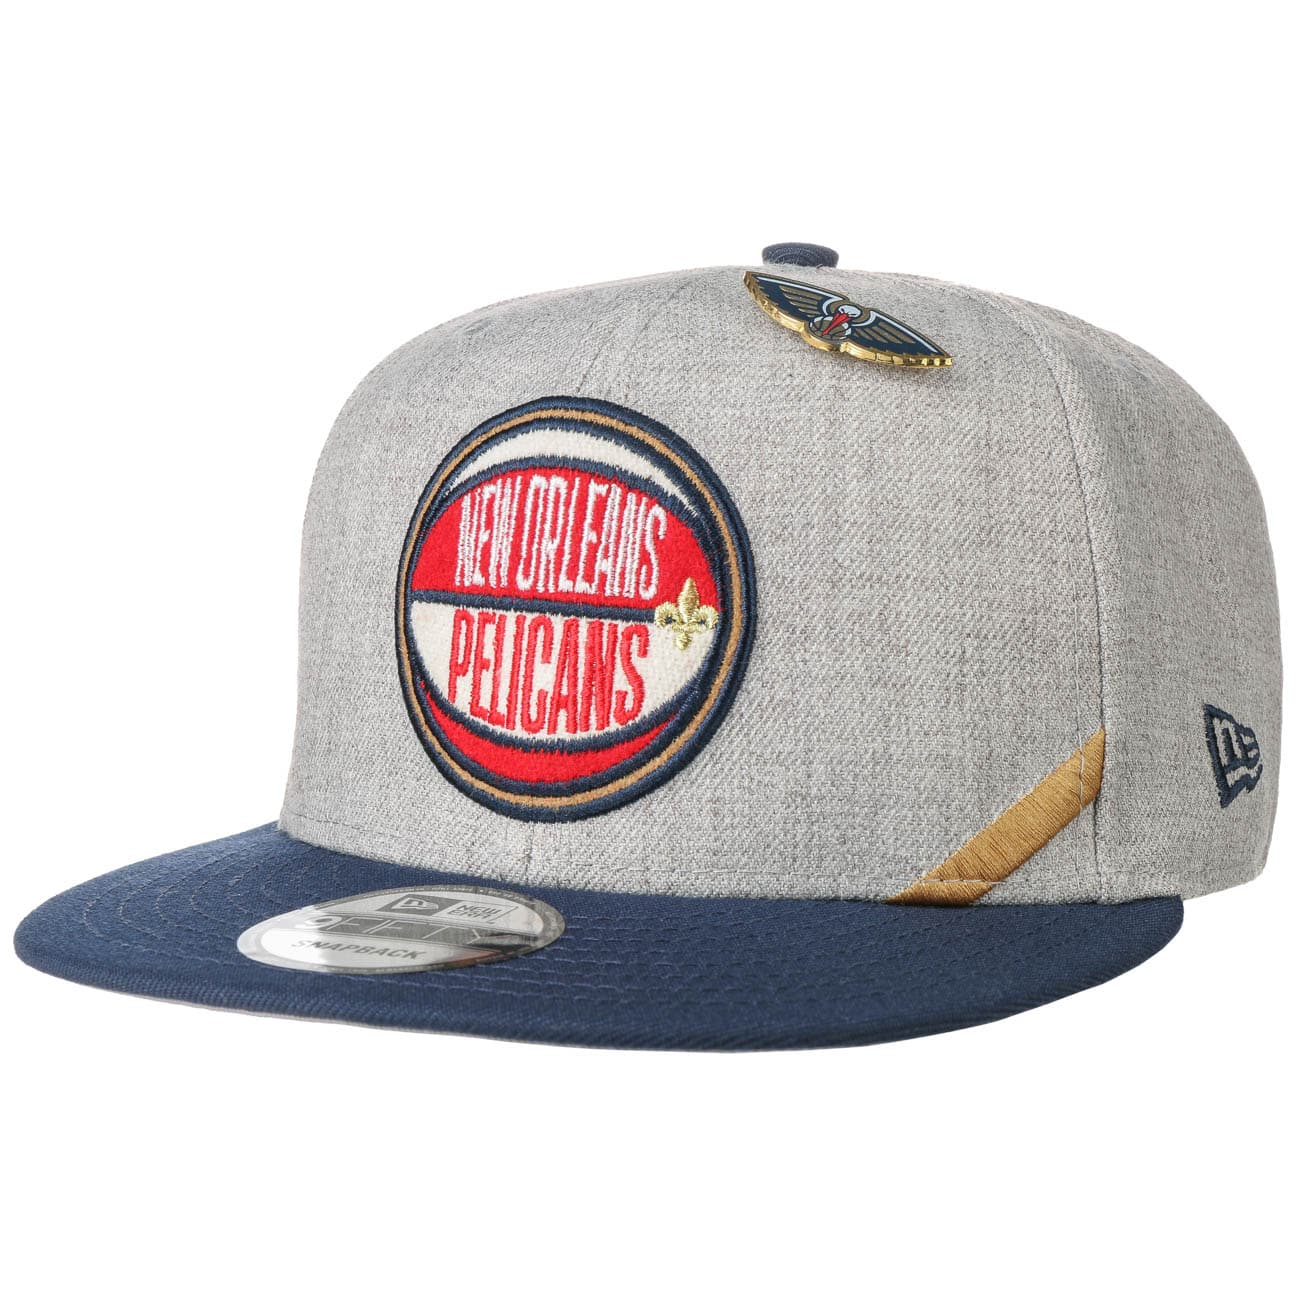 Casquette 9Fifty DRAFT Heather Pelicans by New Era  casquette snapback